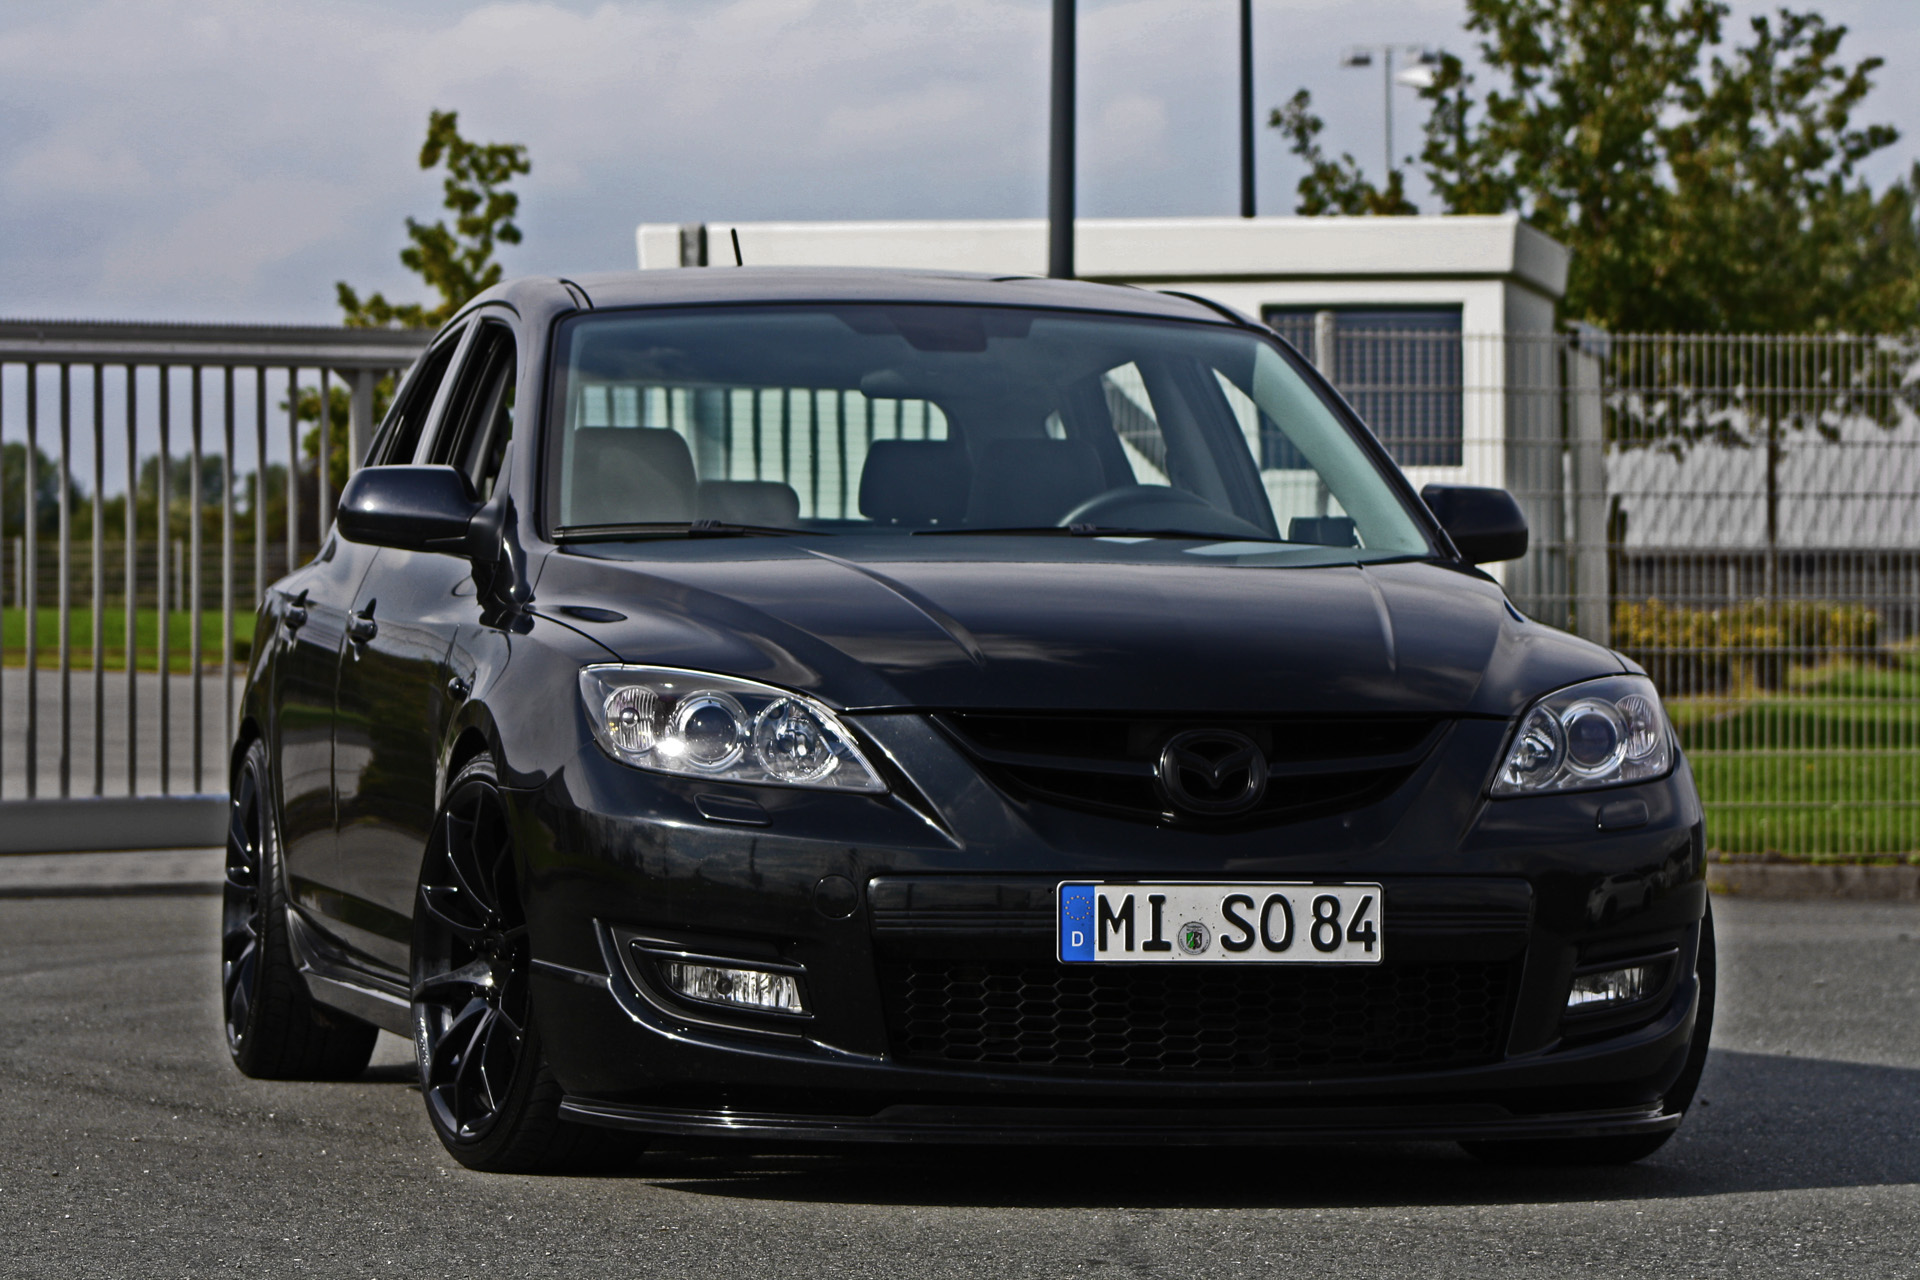 Image gallery 3 black mazdaspeed for Mazdaspeed 6 exterior mods